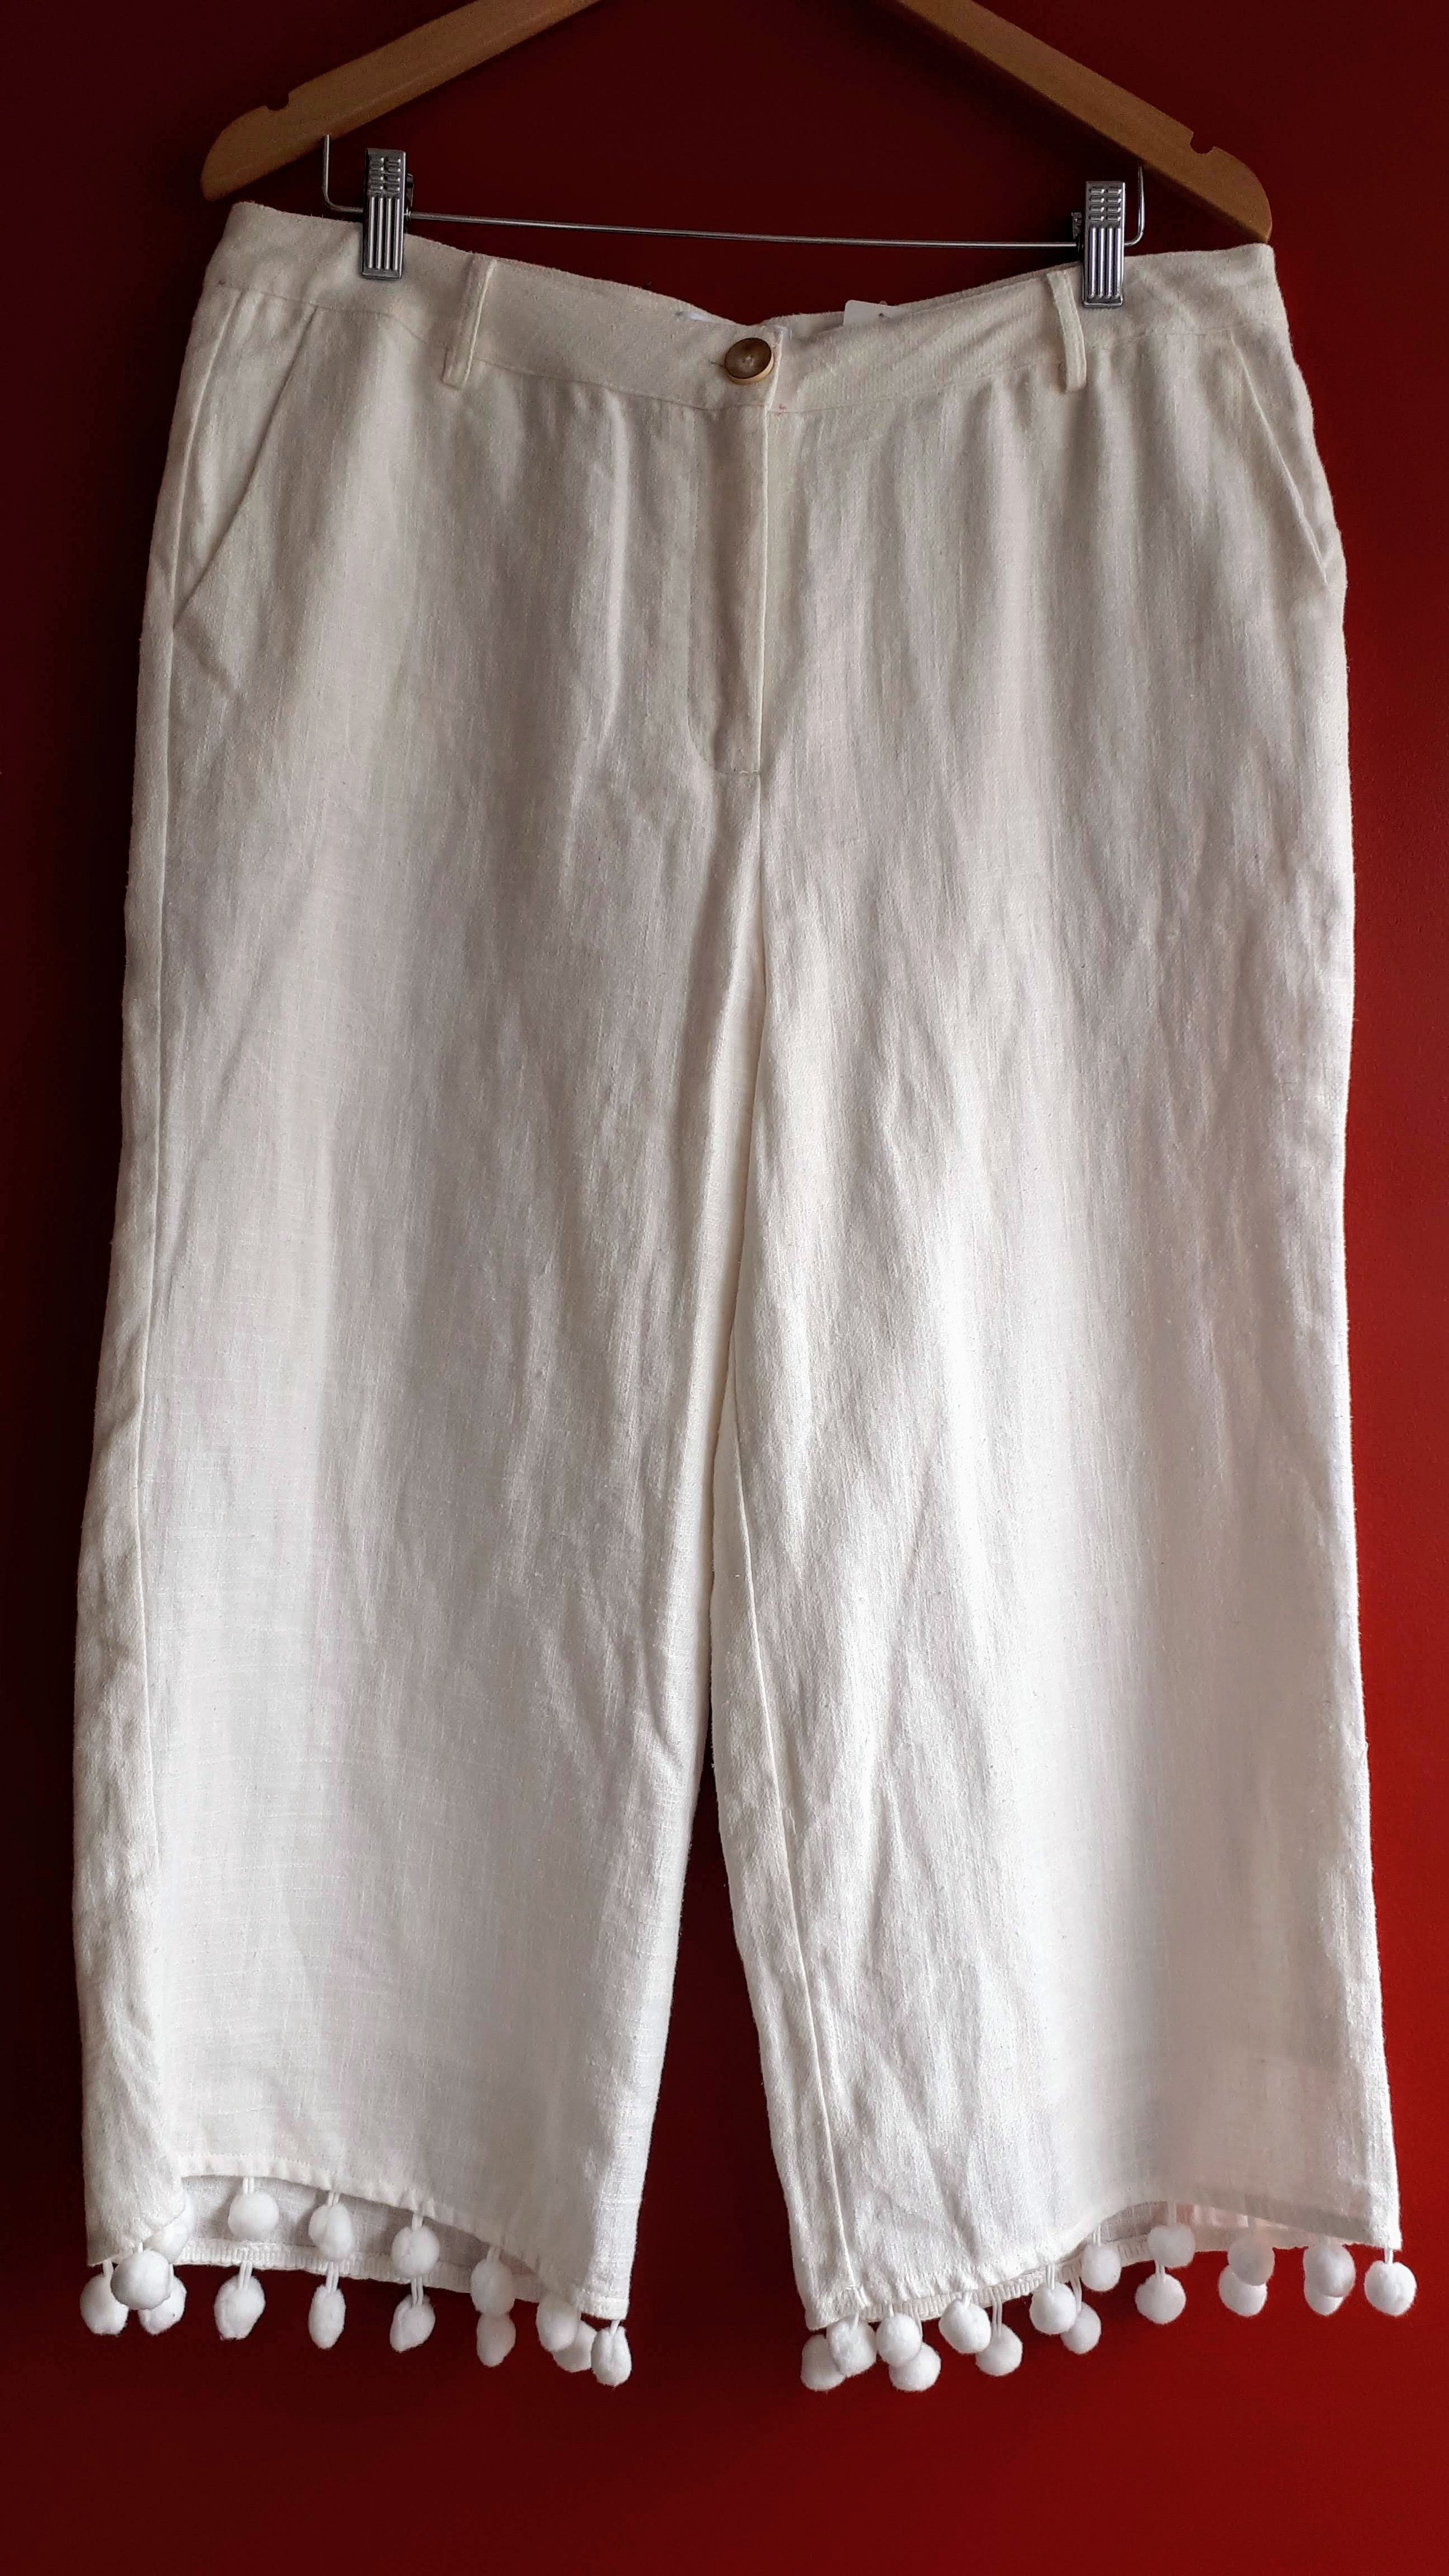 Anthropologie pants; Size 32, $32